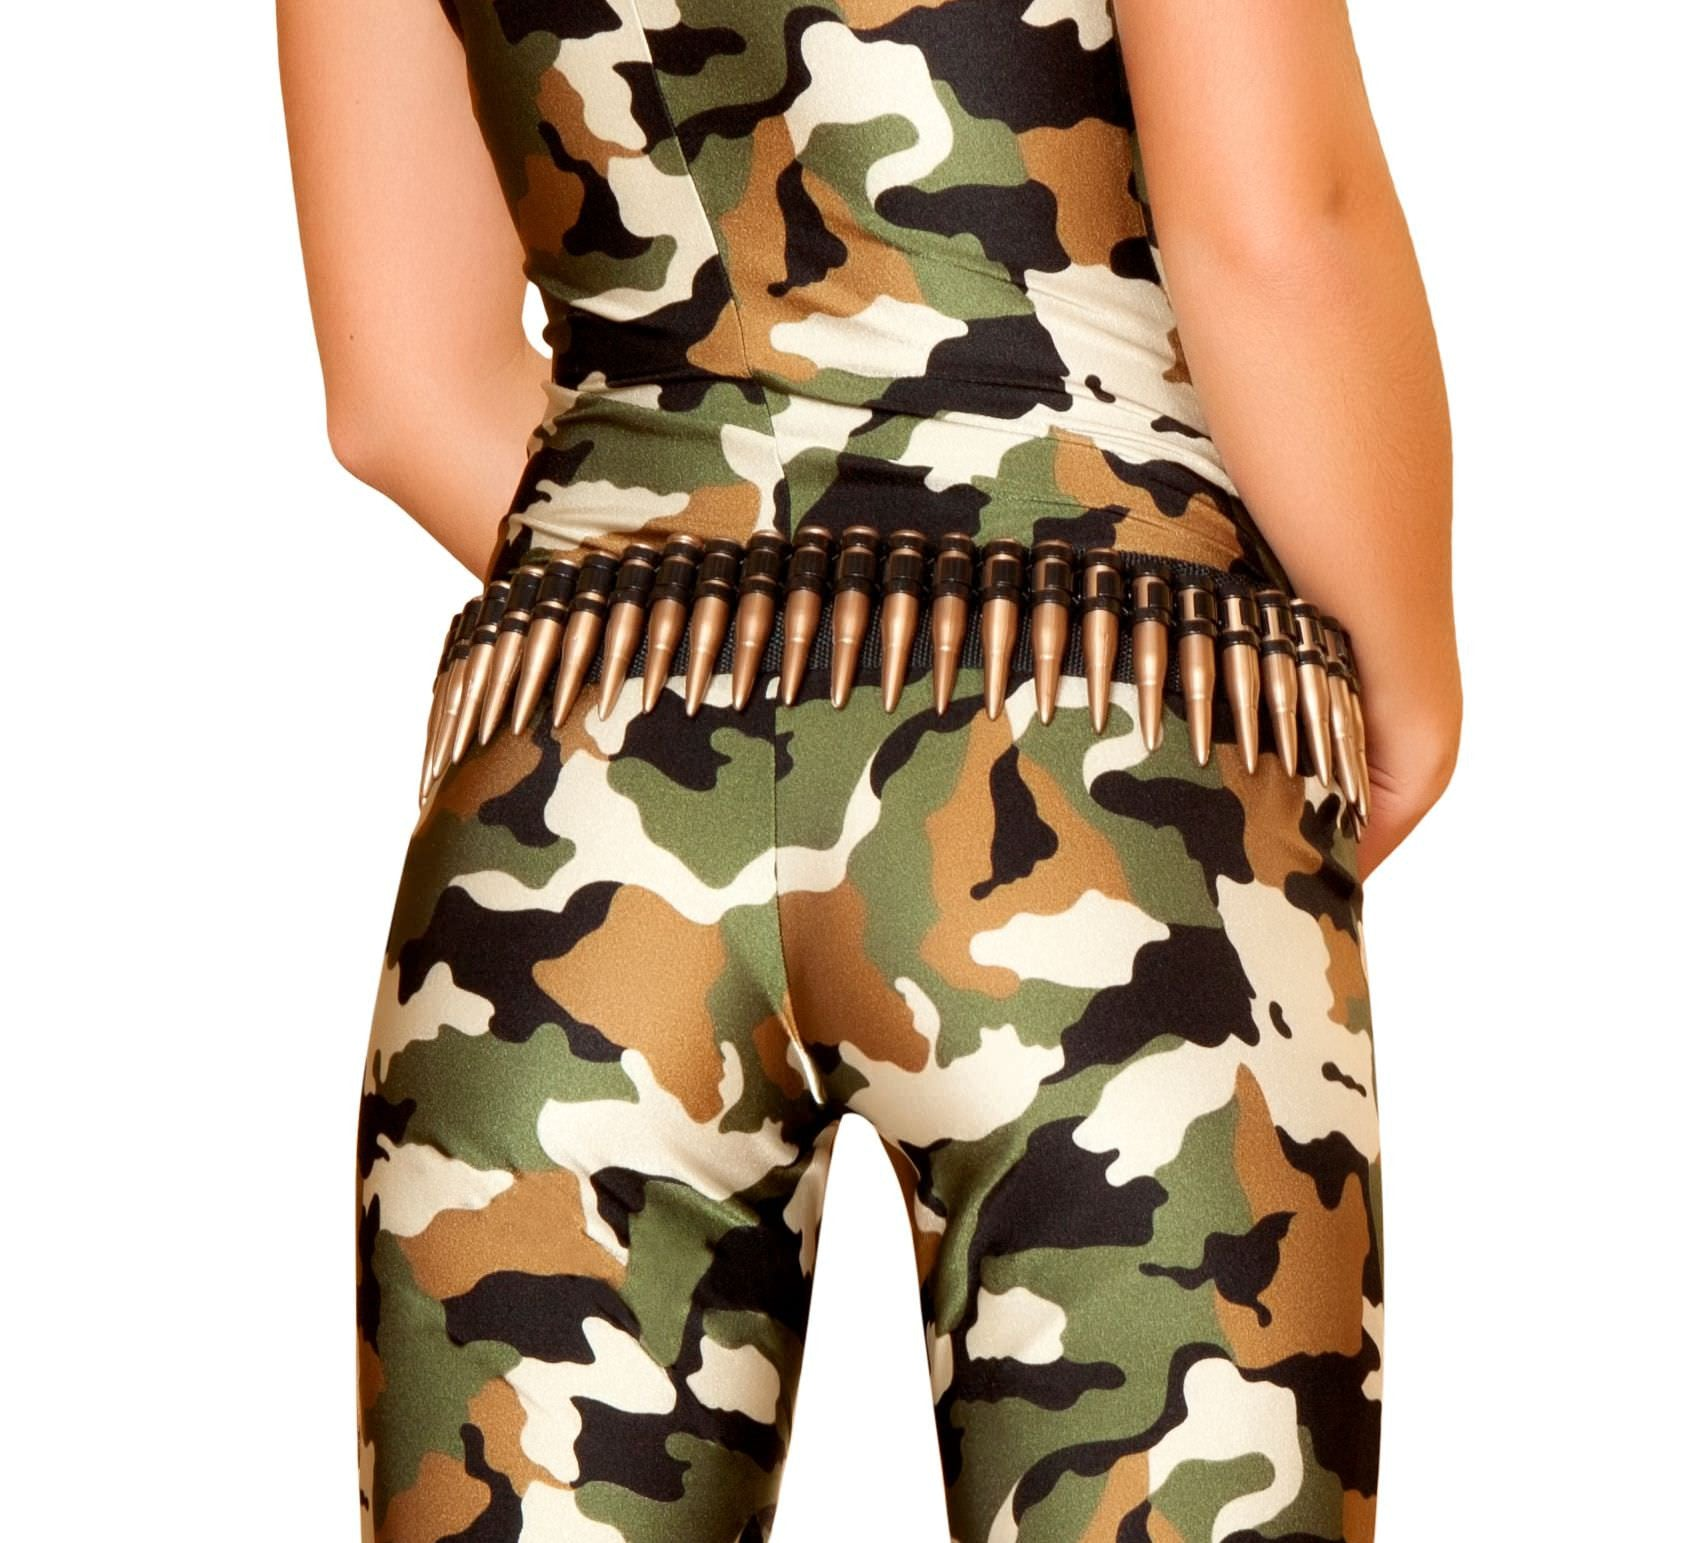 4387 - Bullet Belt ${description} | Roma Costume and Roma Confidential wholesale manufacturer of Women Apparel bulk world wide wholesale and world wide drop ship services for Adult Halloween Costumes, Sexy and Elegant Lingerie, Rave Clothing, Club wear, and Christmas Costumes. Accessories, Roma Costume, Inc., Roma Costume, Roma Confidential, Wholesale clothing, drop ship, drop ship service, Wholesale Lingerie, Wholesale Adult Halloween Costumes, Rave Clothing, EDM Clothing, Festival Wear, Christmas Costumes, Clubwear, Club wear.